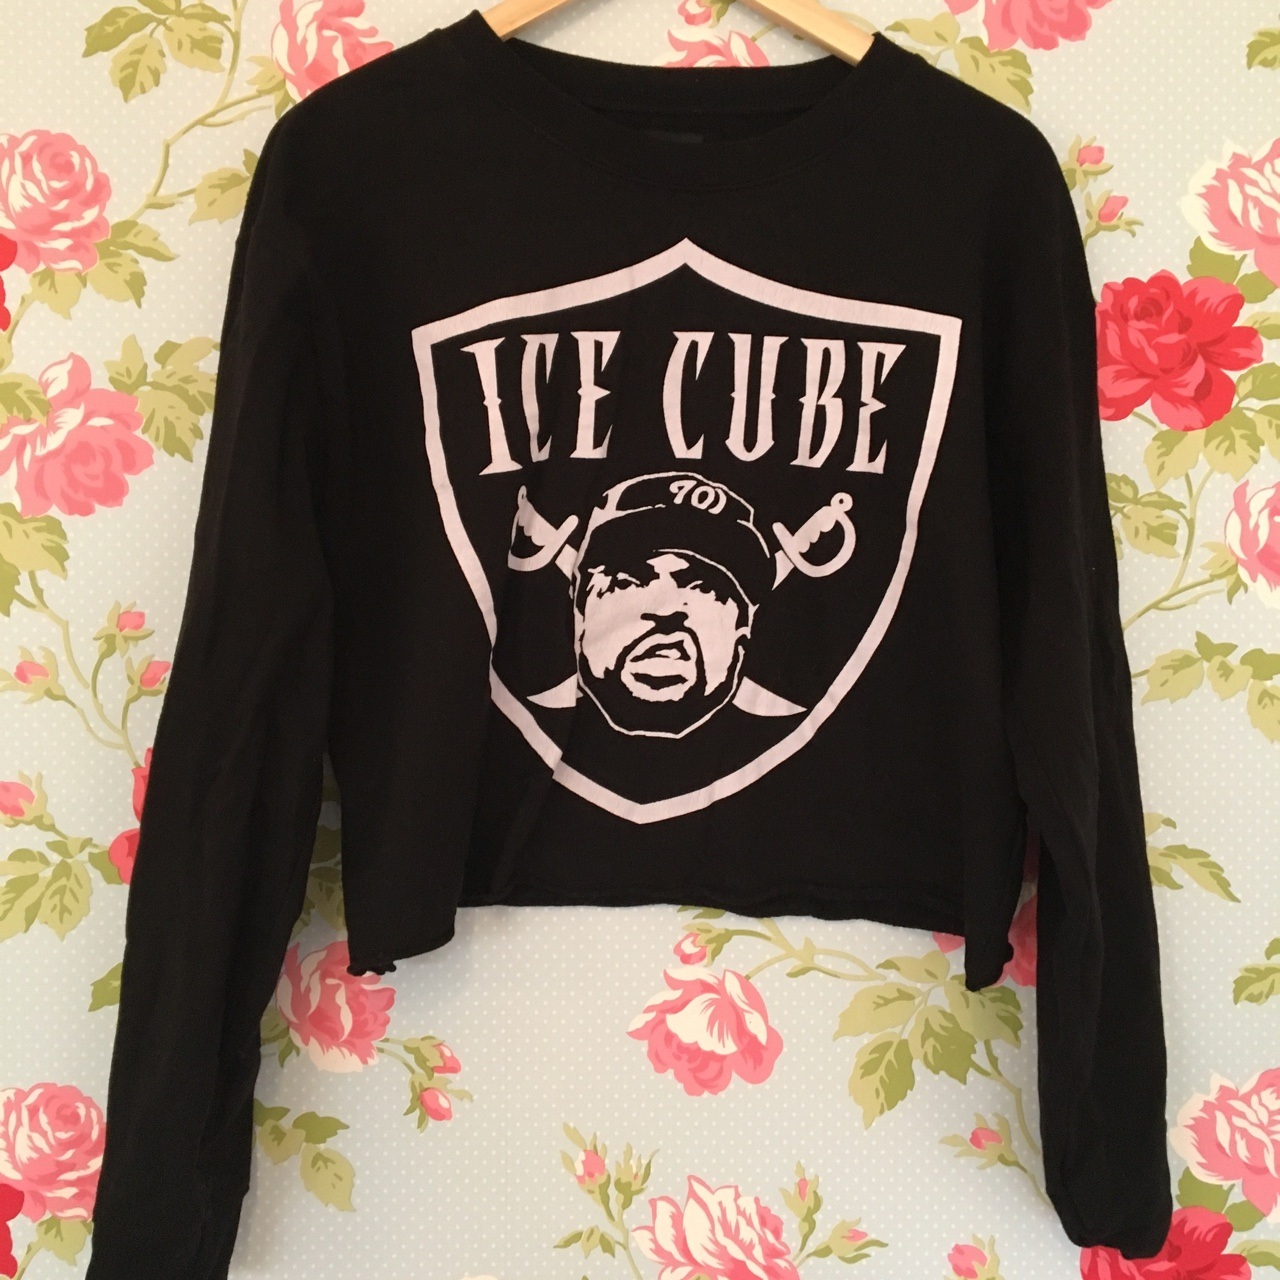 Forever 21 Ice Cube Black Cropped Sweatshirt Size Depop